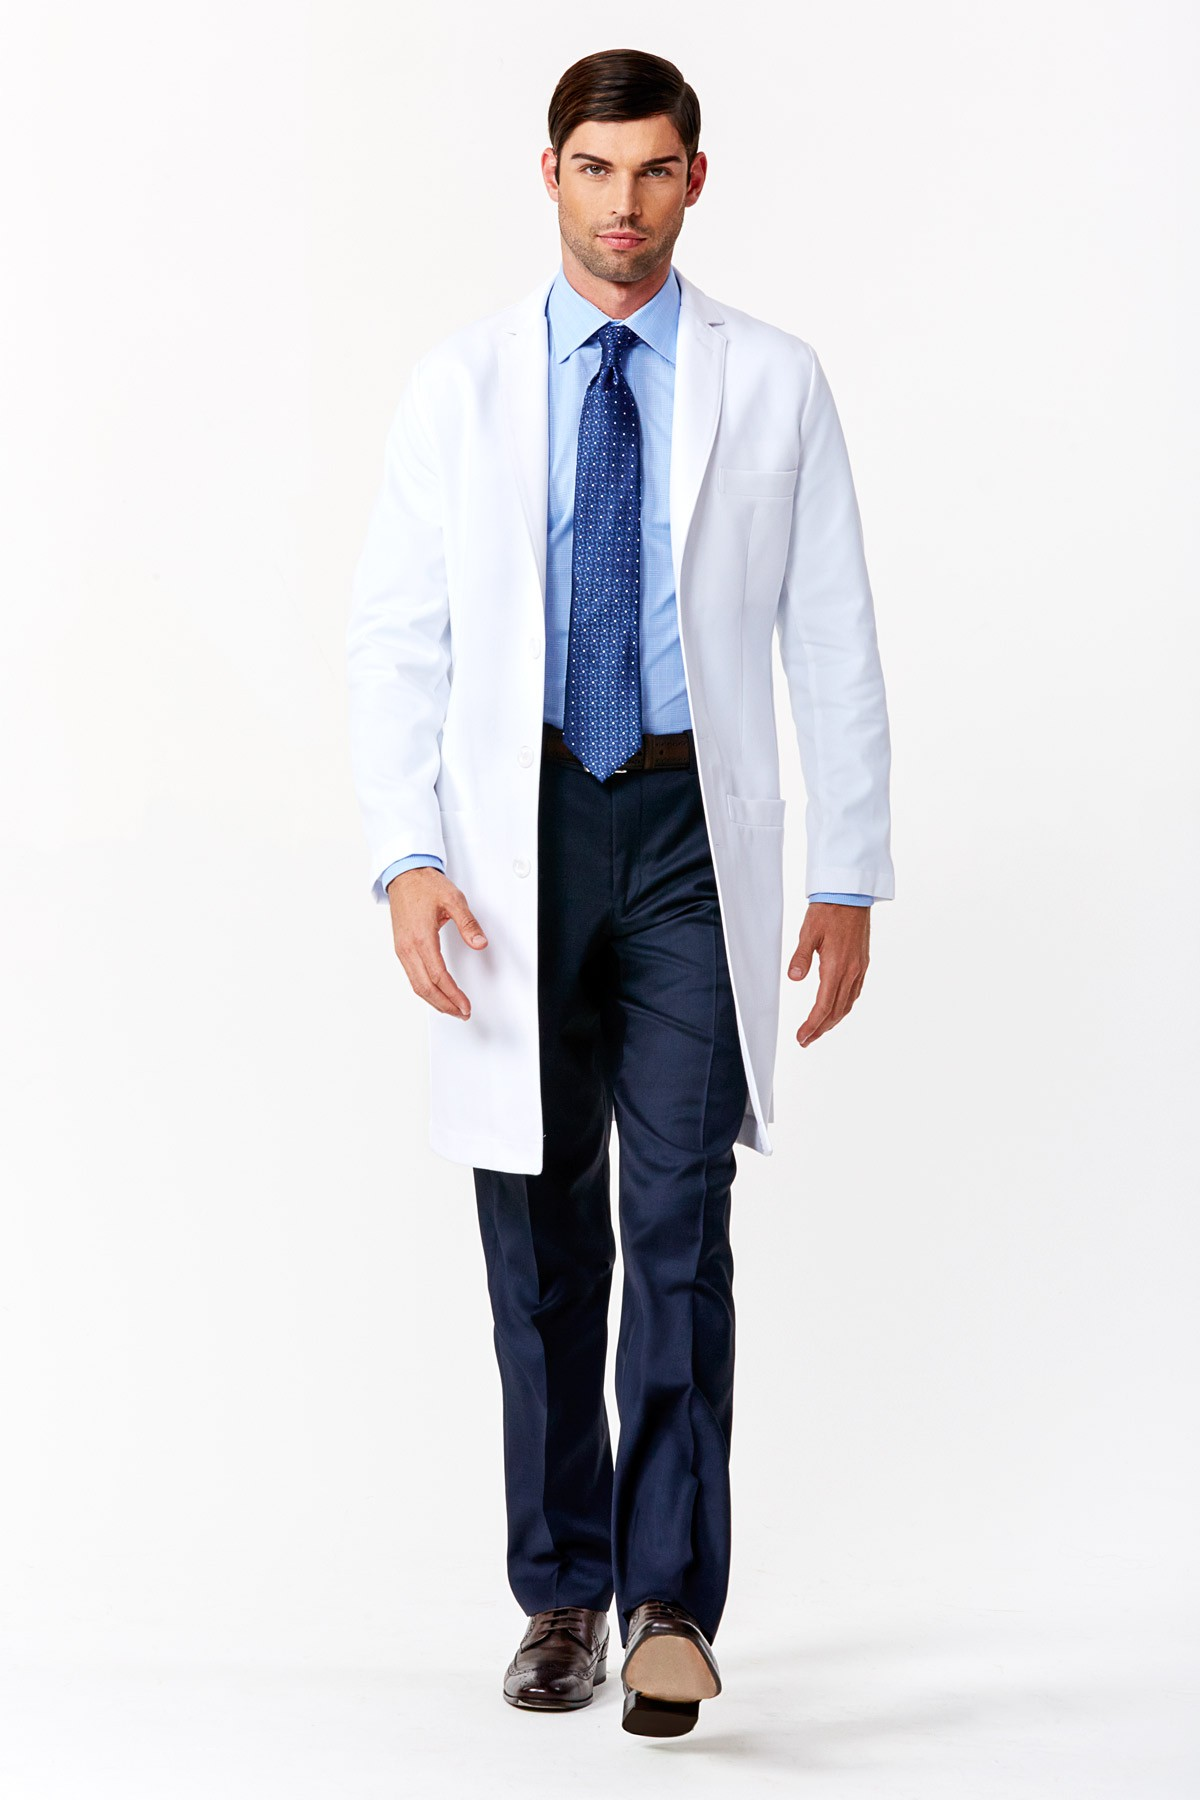 Men's Lab Coats | scrubsandlabcoats